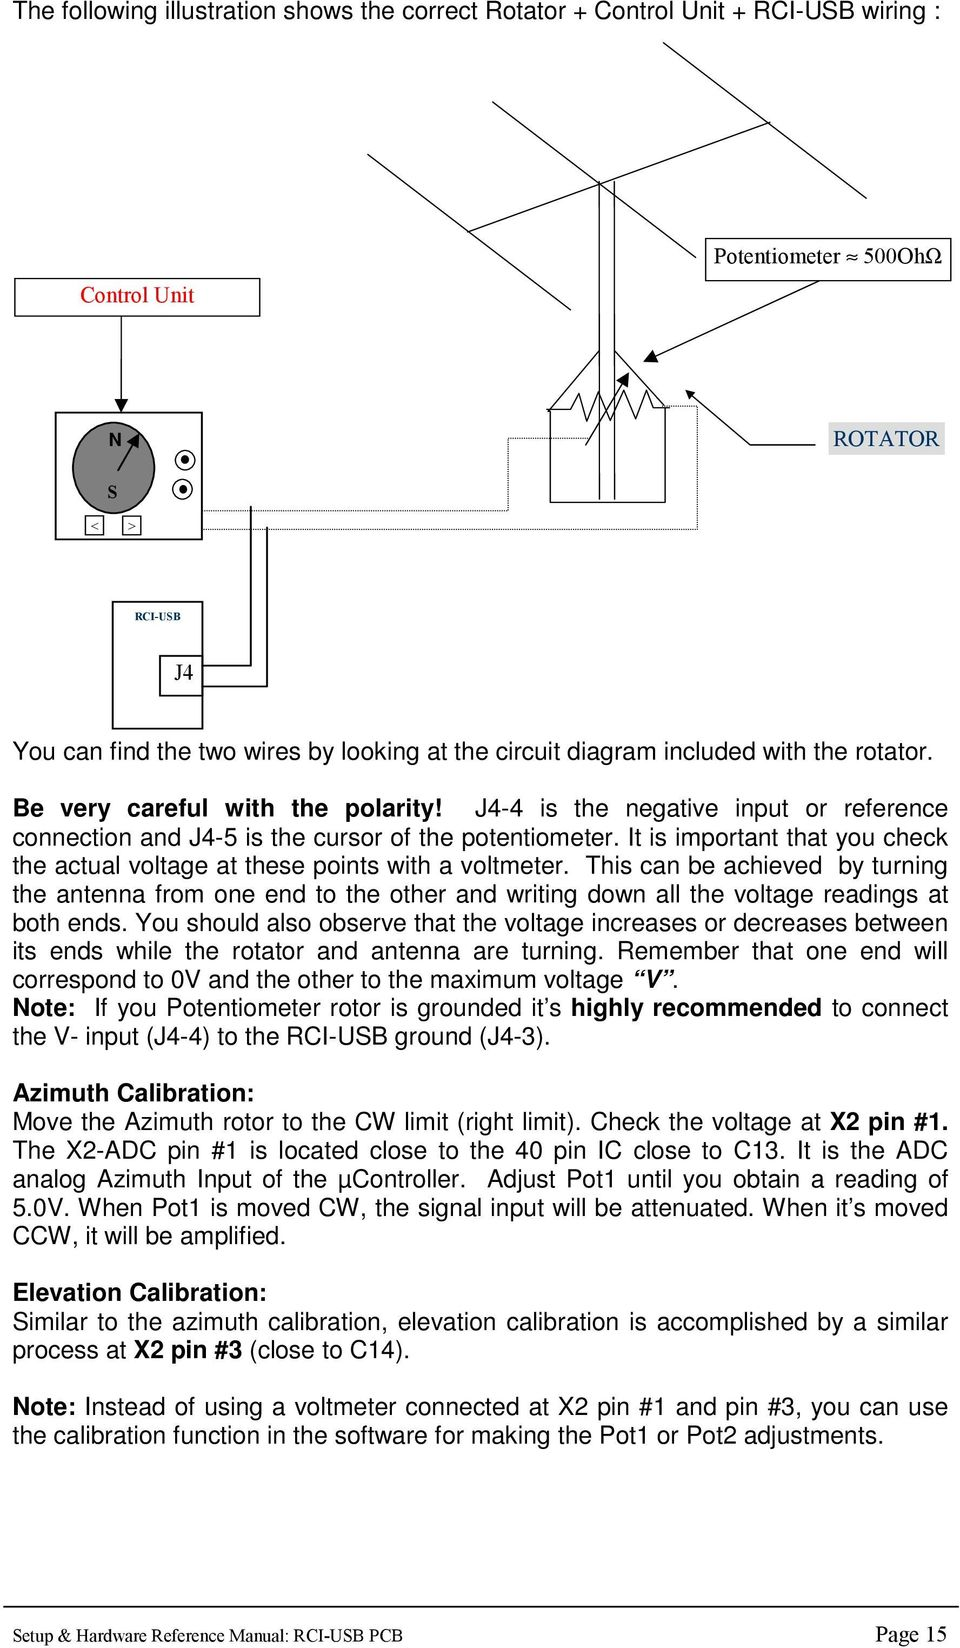 Antenna Rotator System Pdf Rotor Wiring Diagram It Is Important That You Check The Actual Voltage At These Points With A Voltmeter